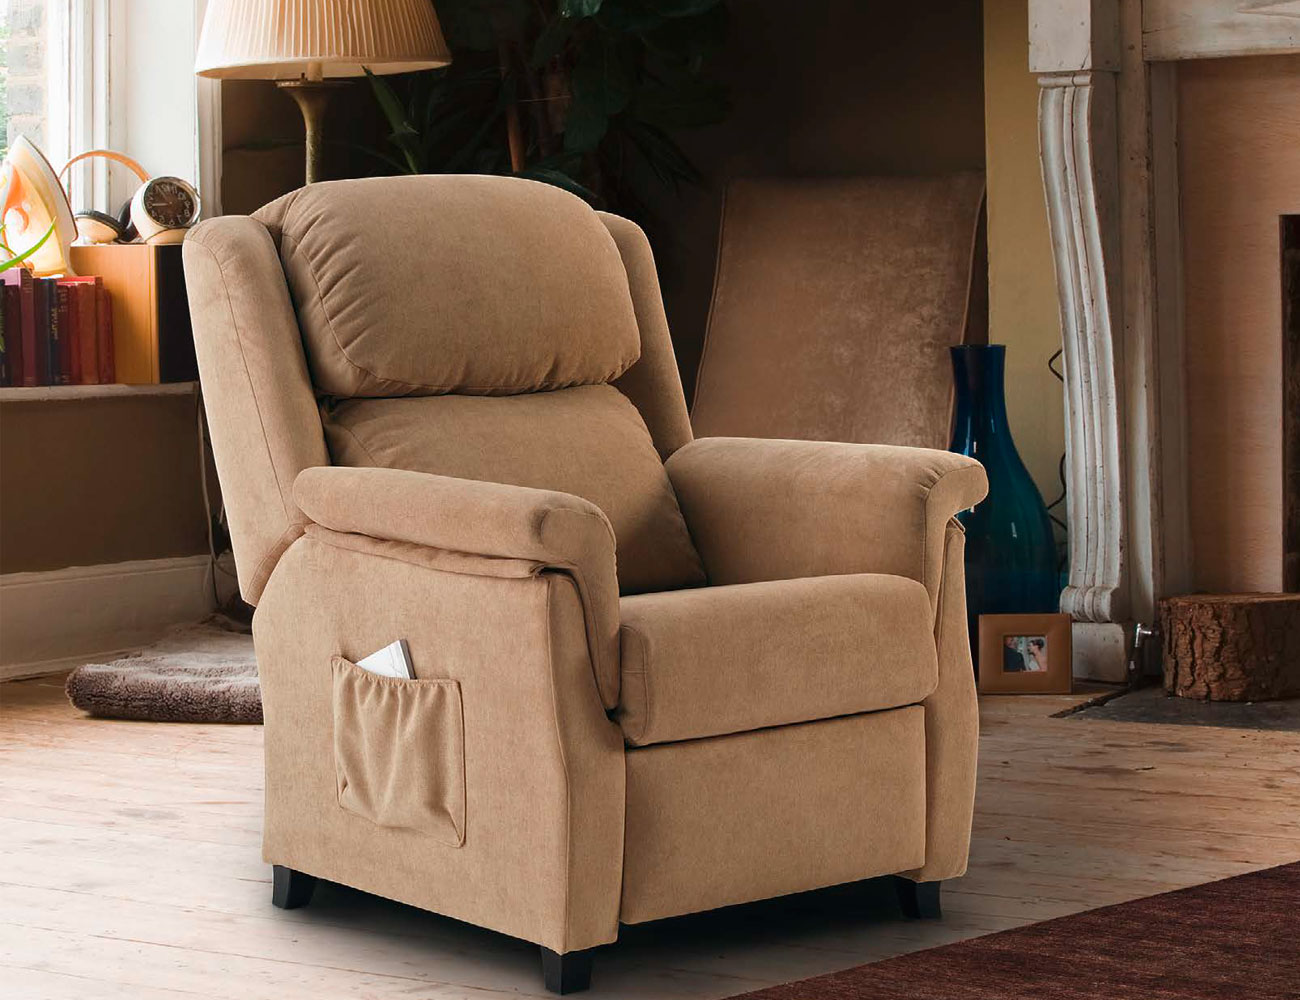 Sillon relax manual bianca 14